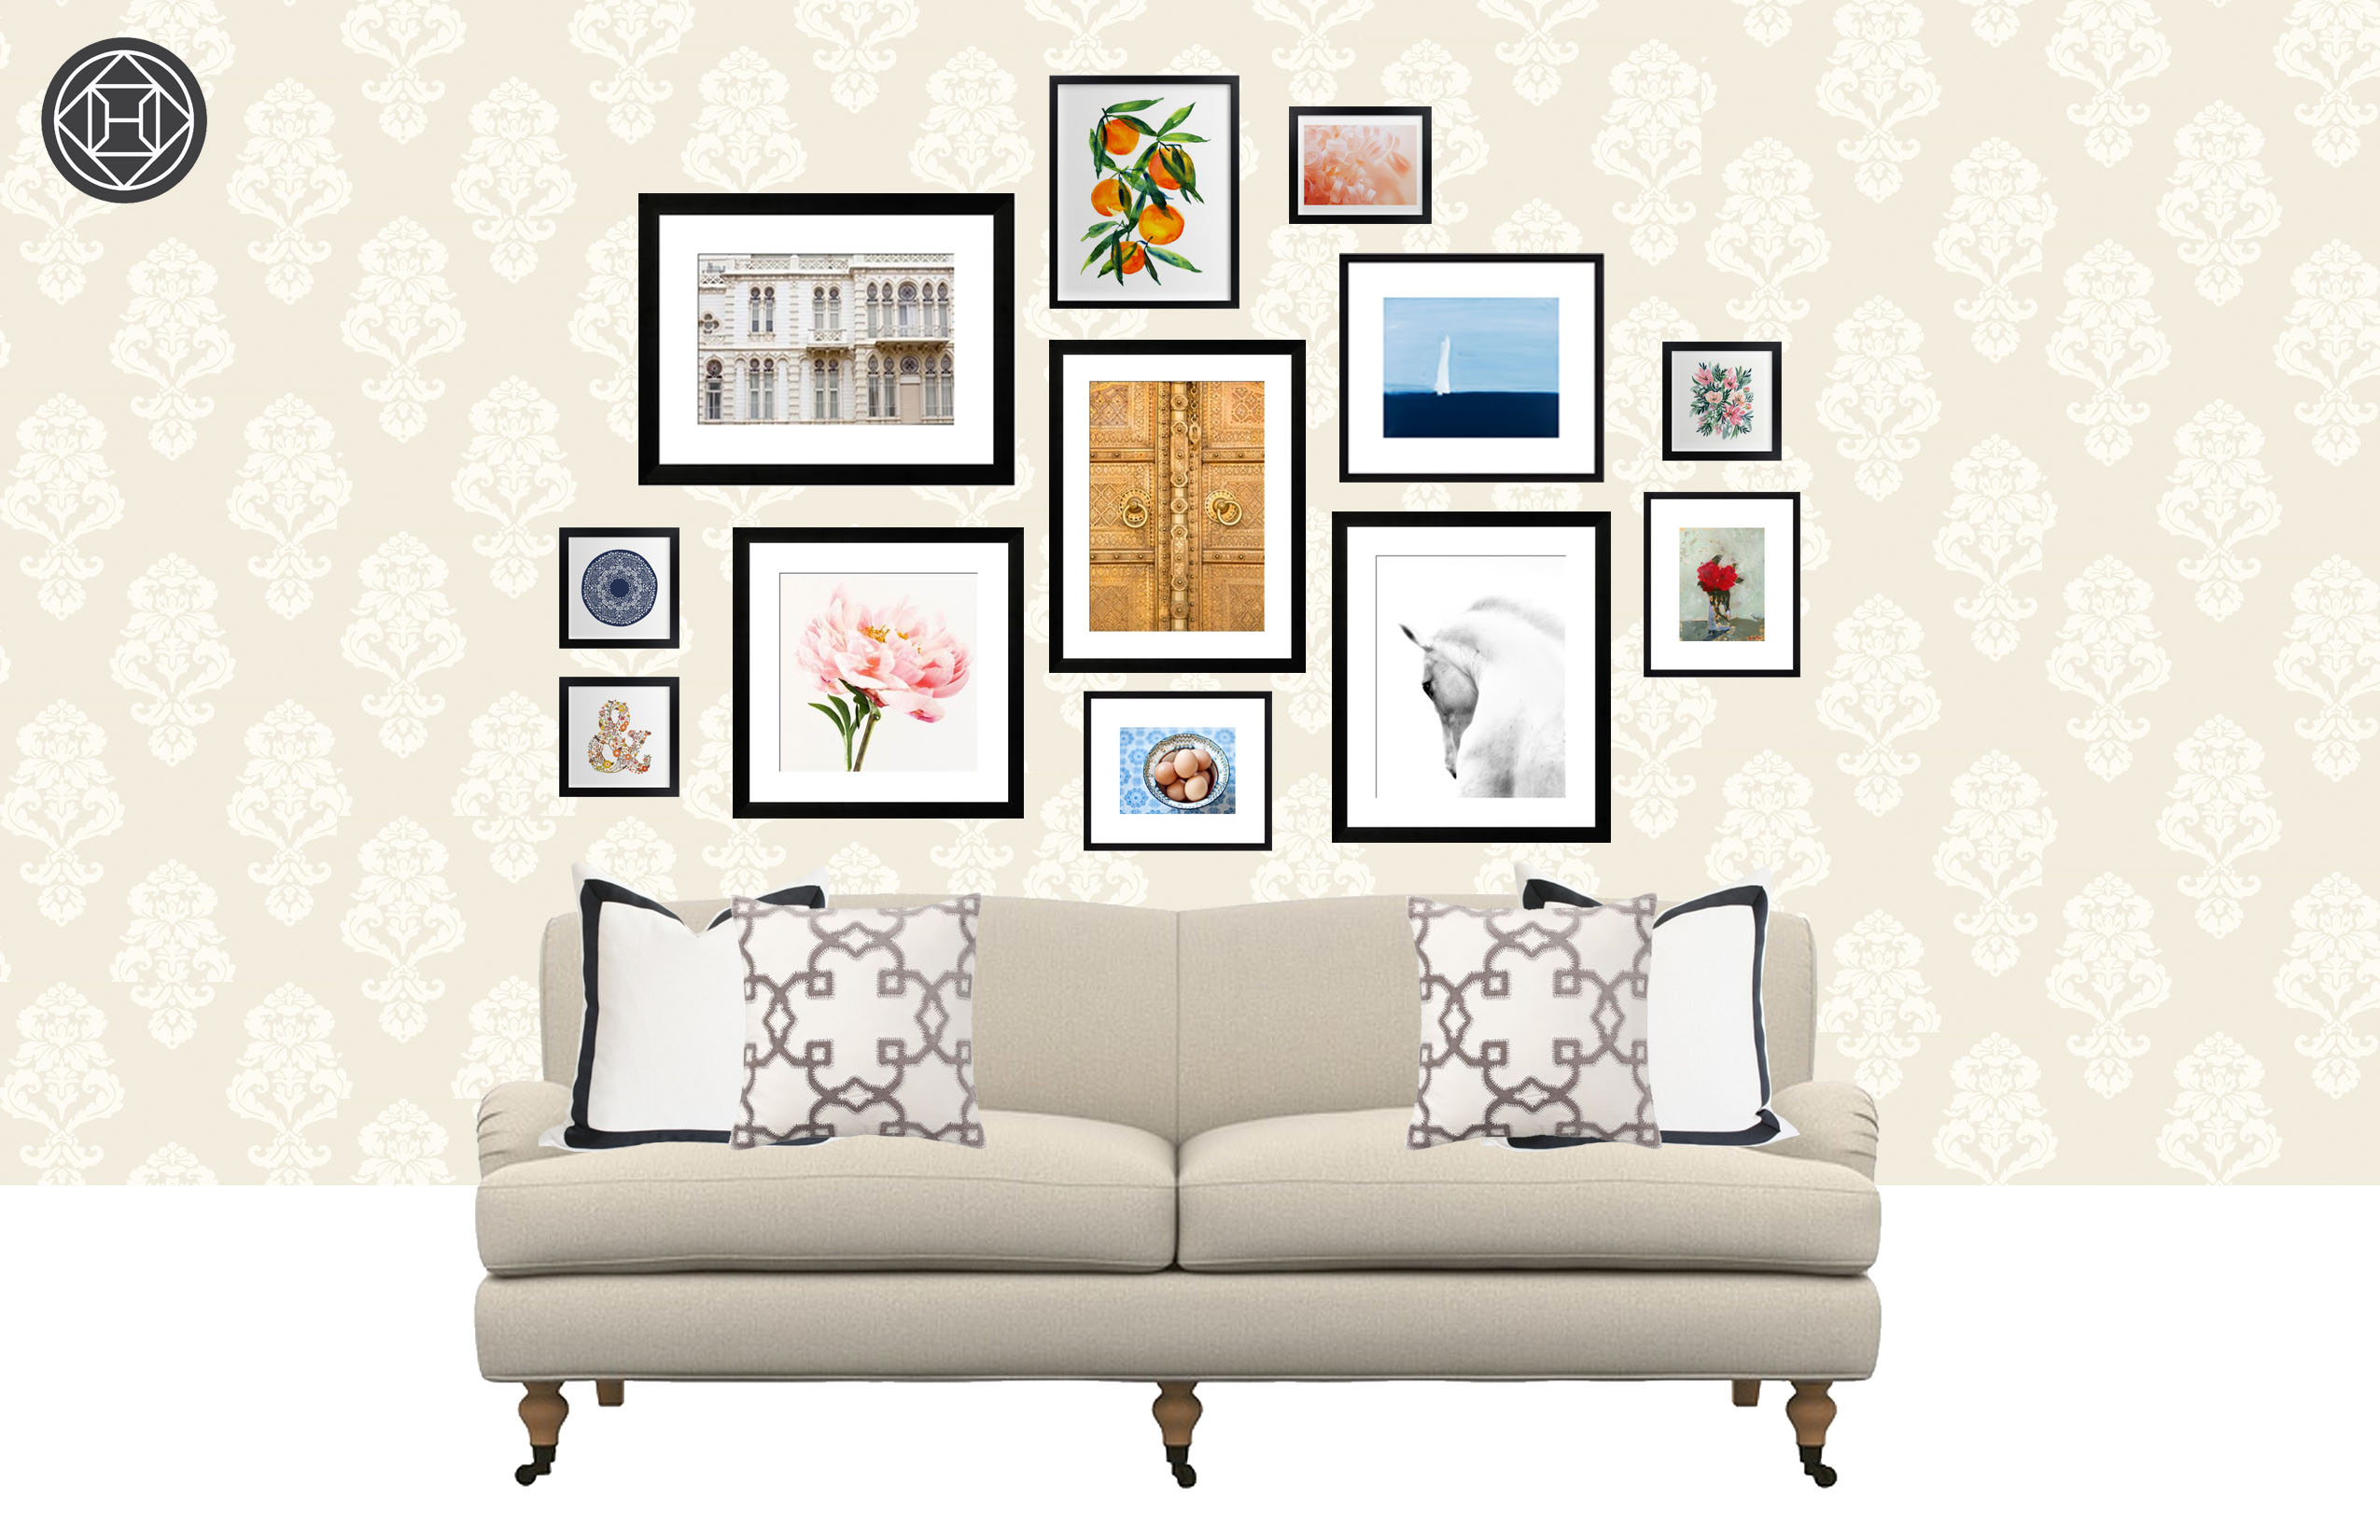 4 Art Hanging Ideas For Your Living Room